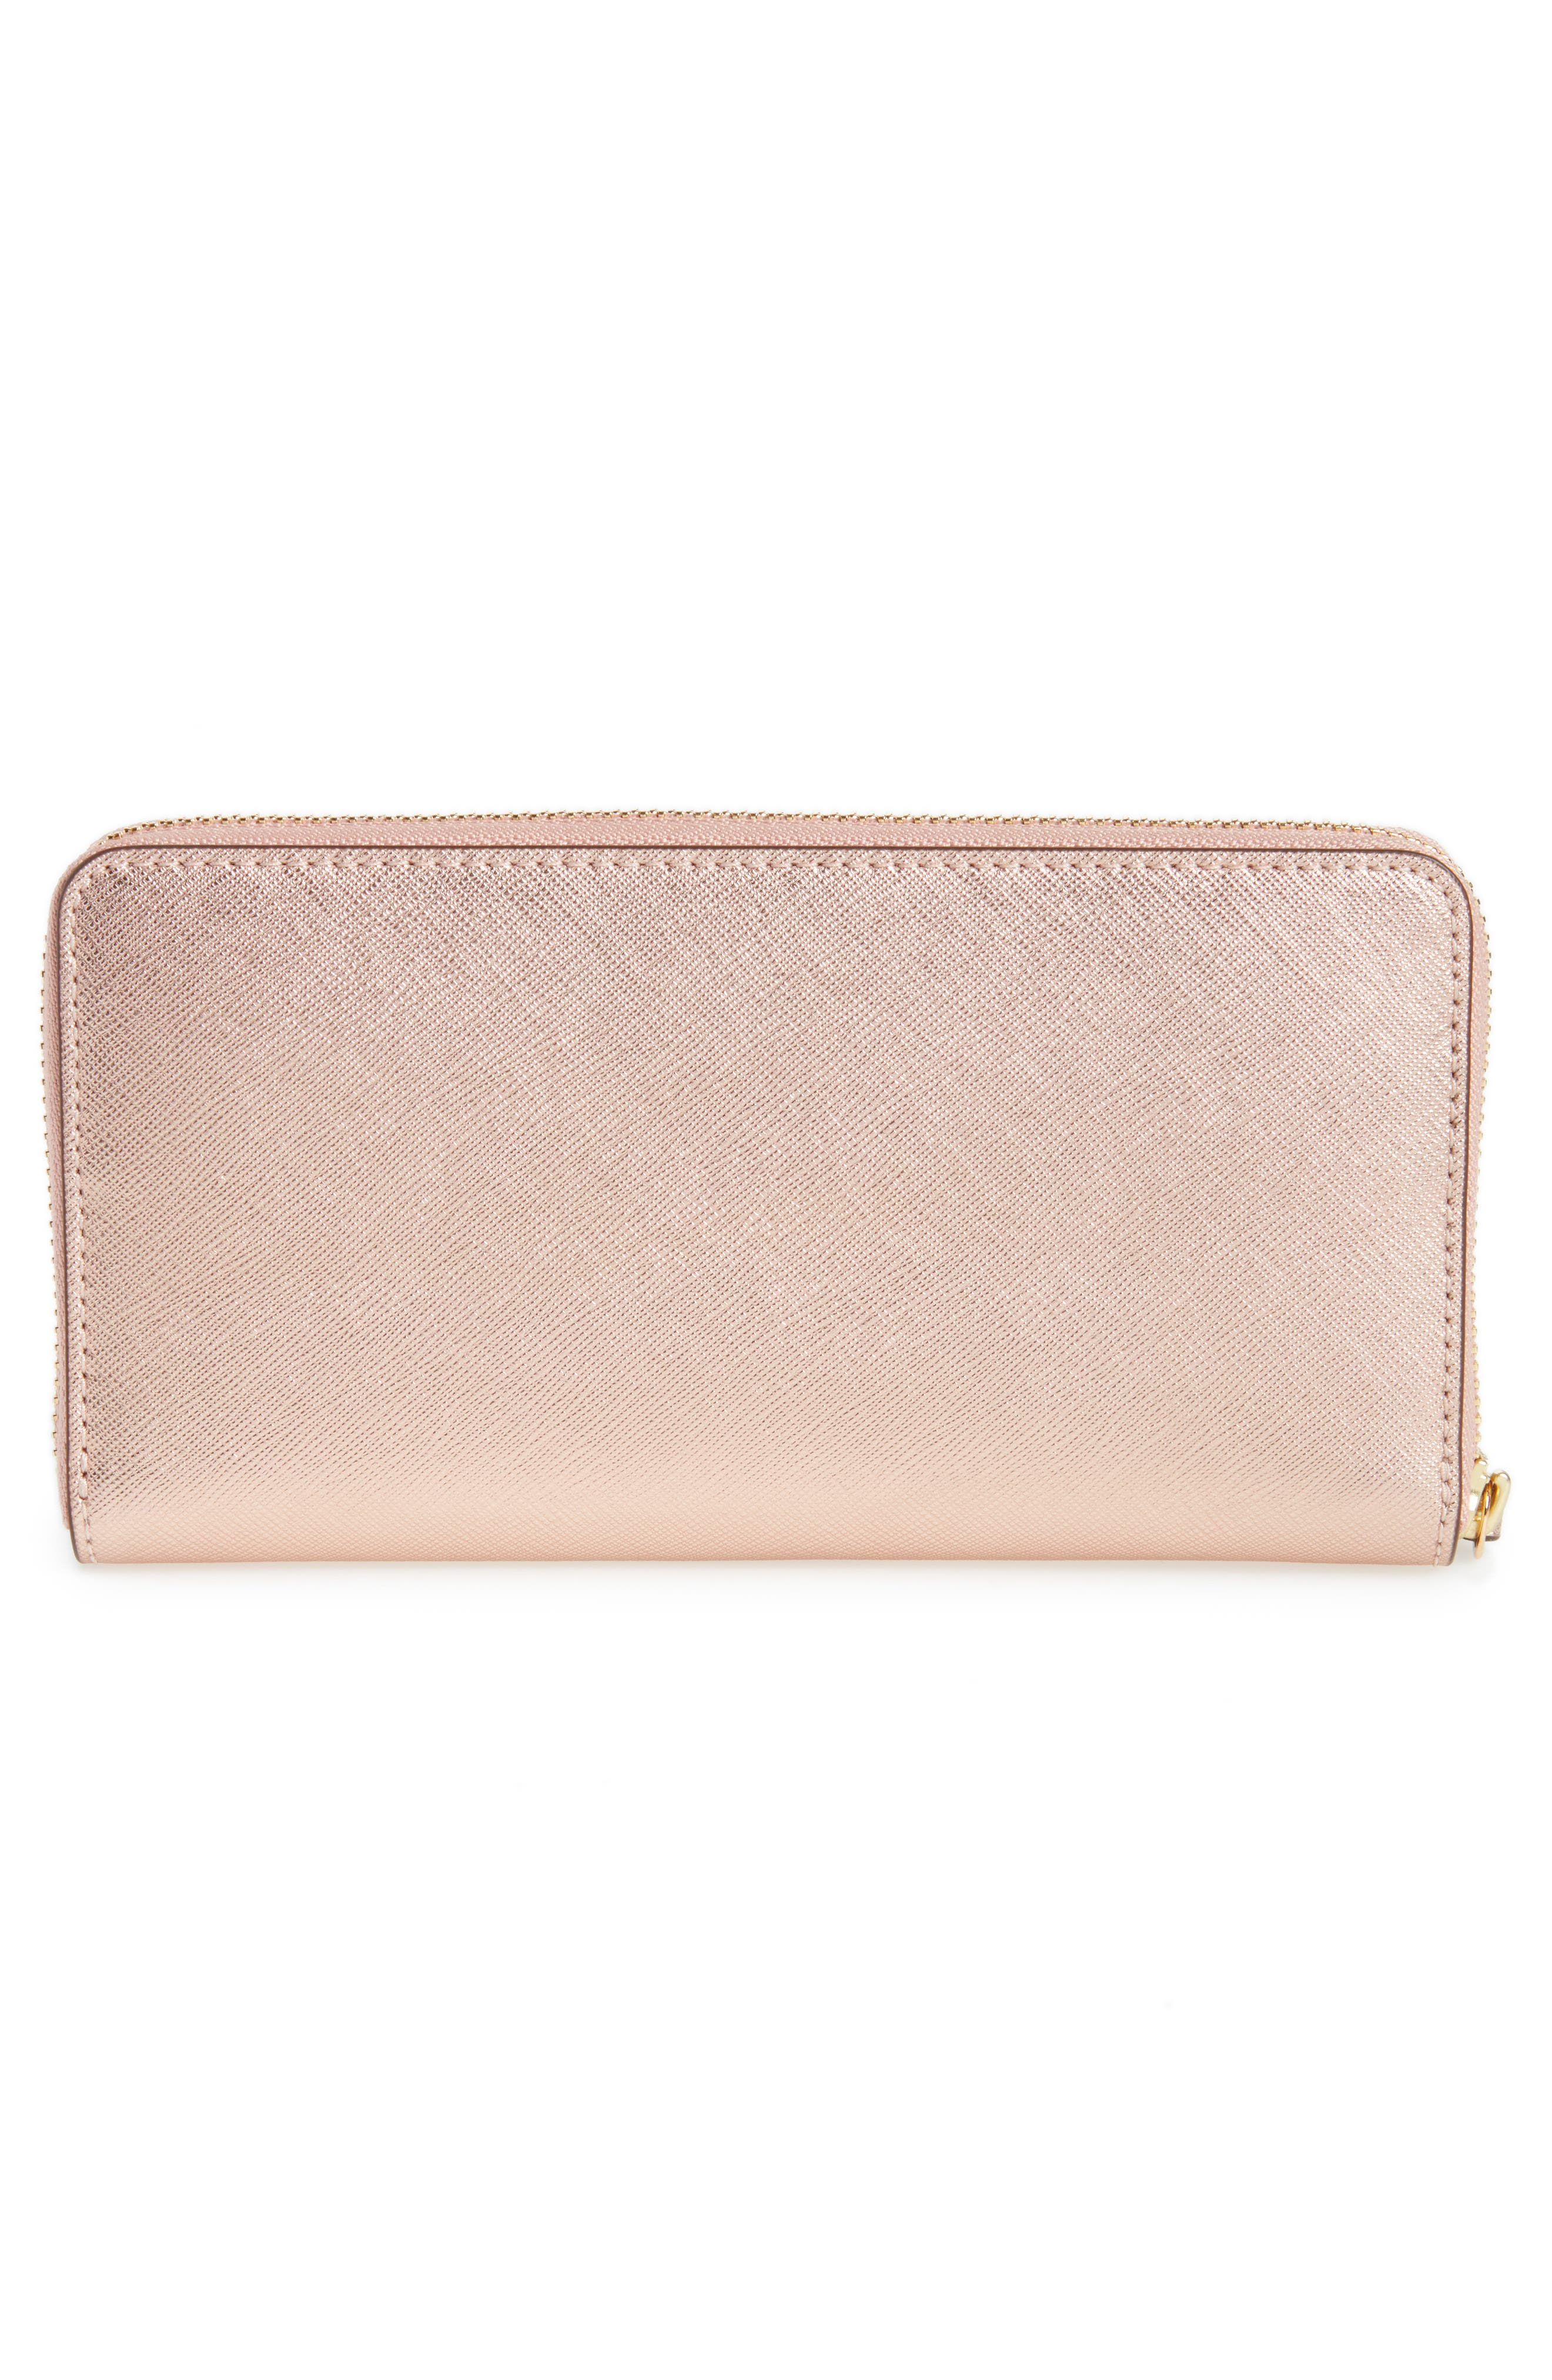 Robinson Metallic Leather Continental Wallet,                             Alternate thumbnail 3, color,                             Light Rose Gold